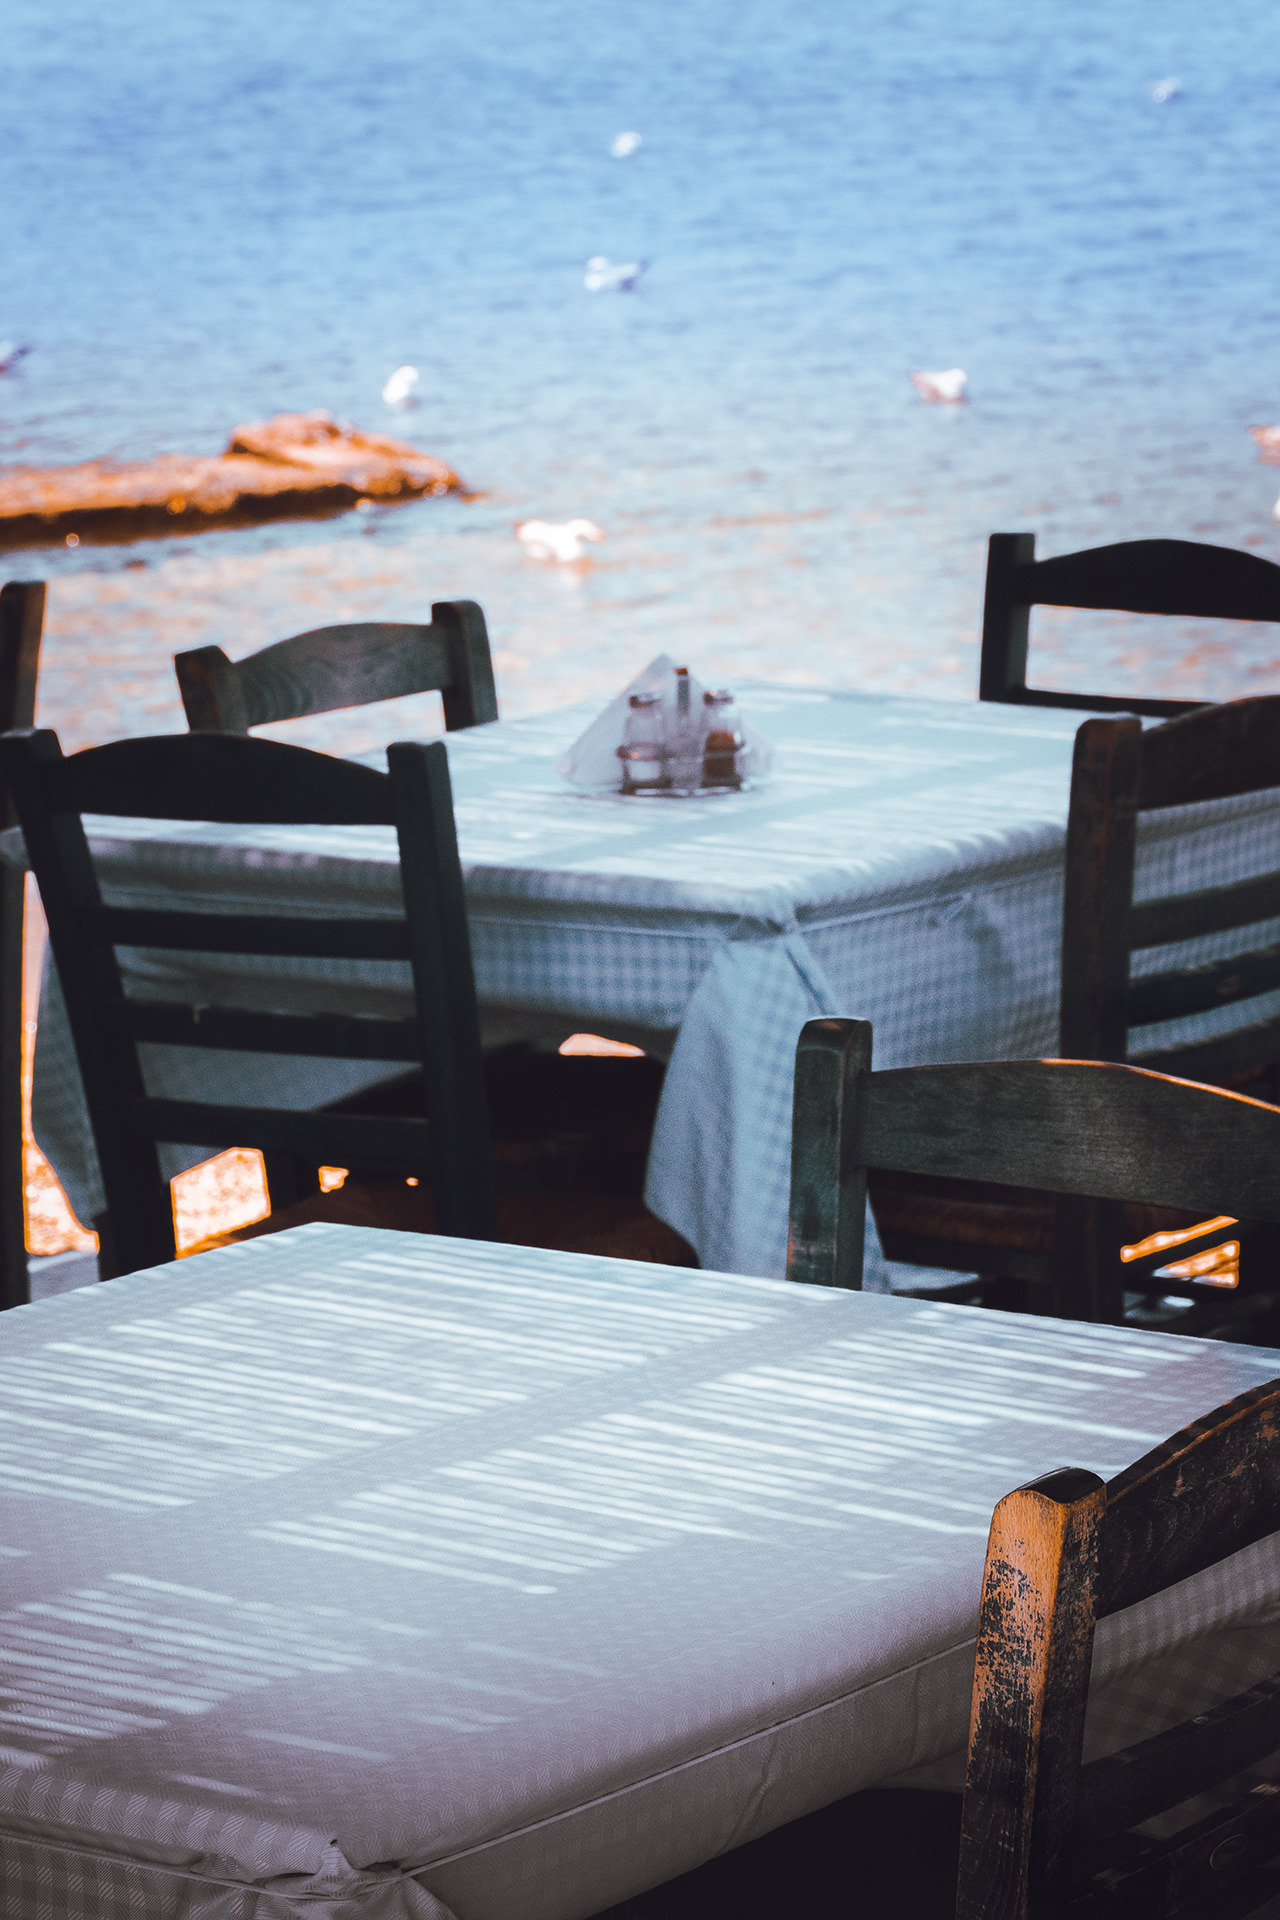 There are a few taverna choices down the coast from Sounion that do the setting justice